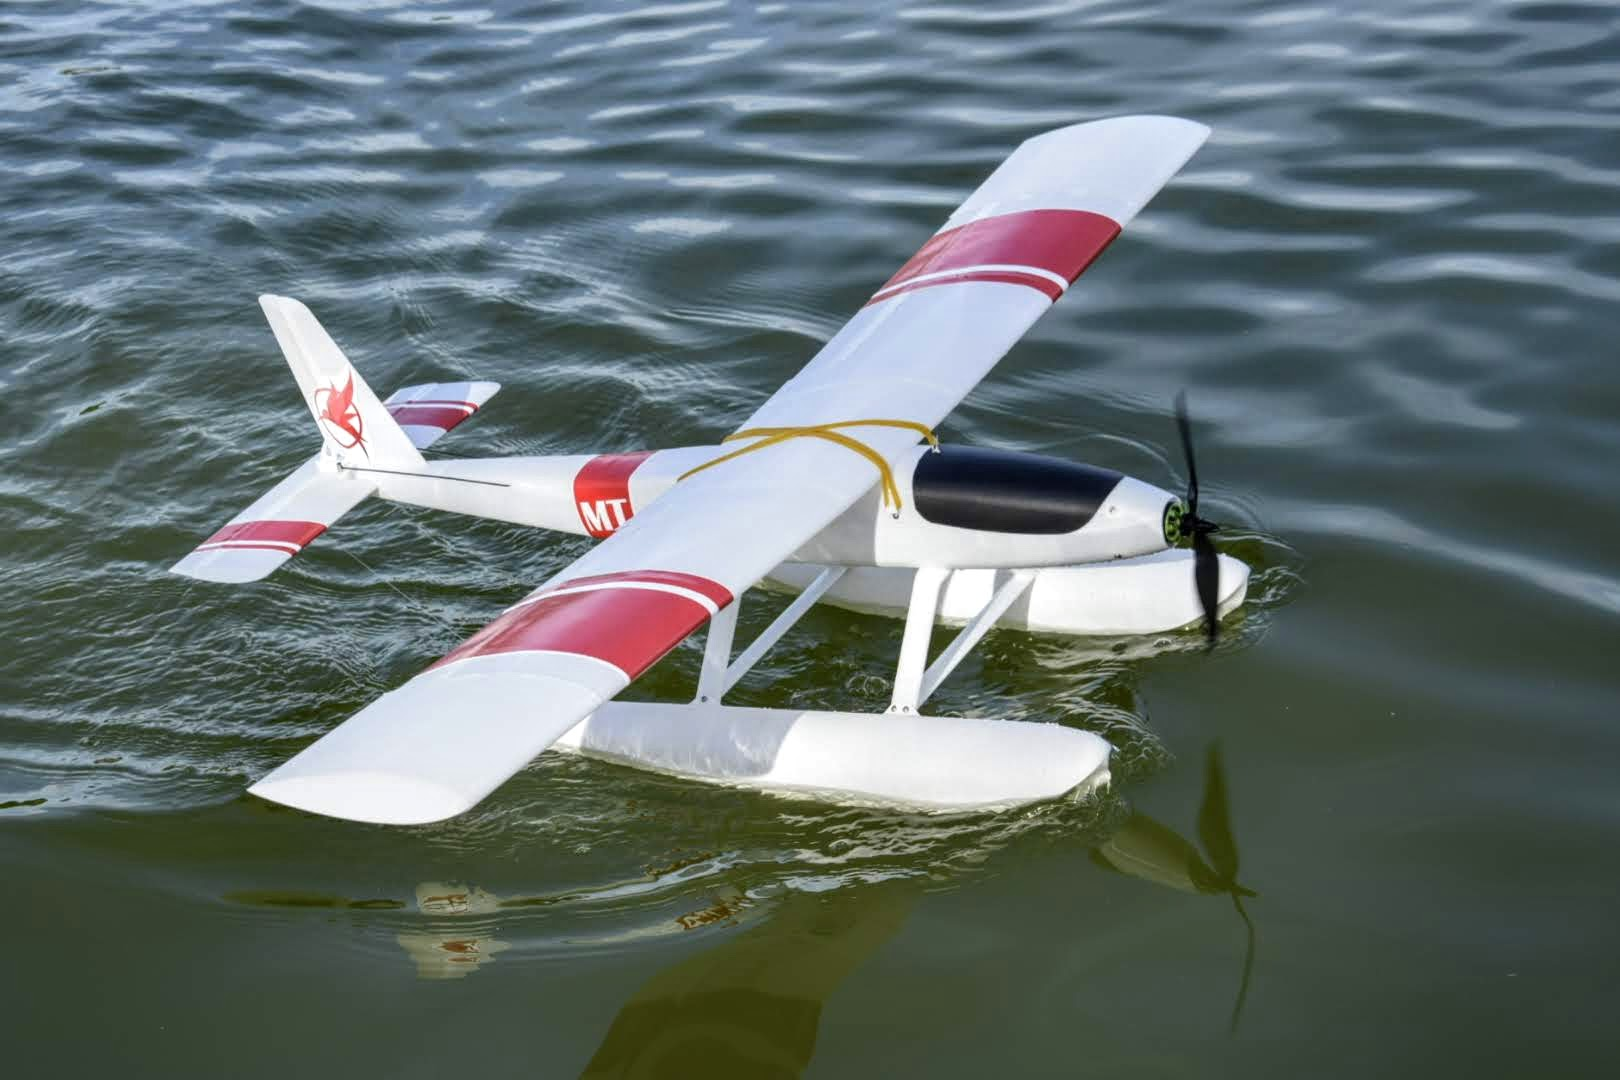 Eclipson - 3D printed airplanes